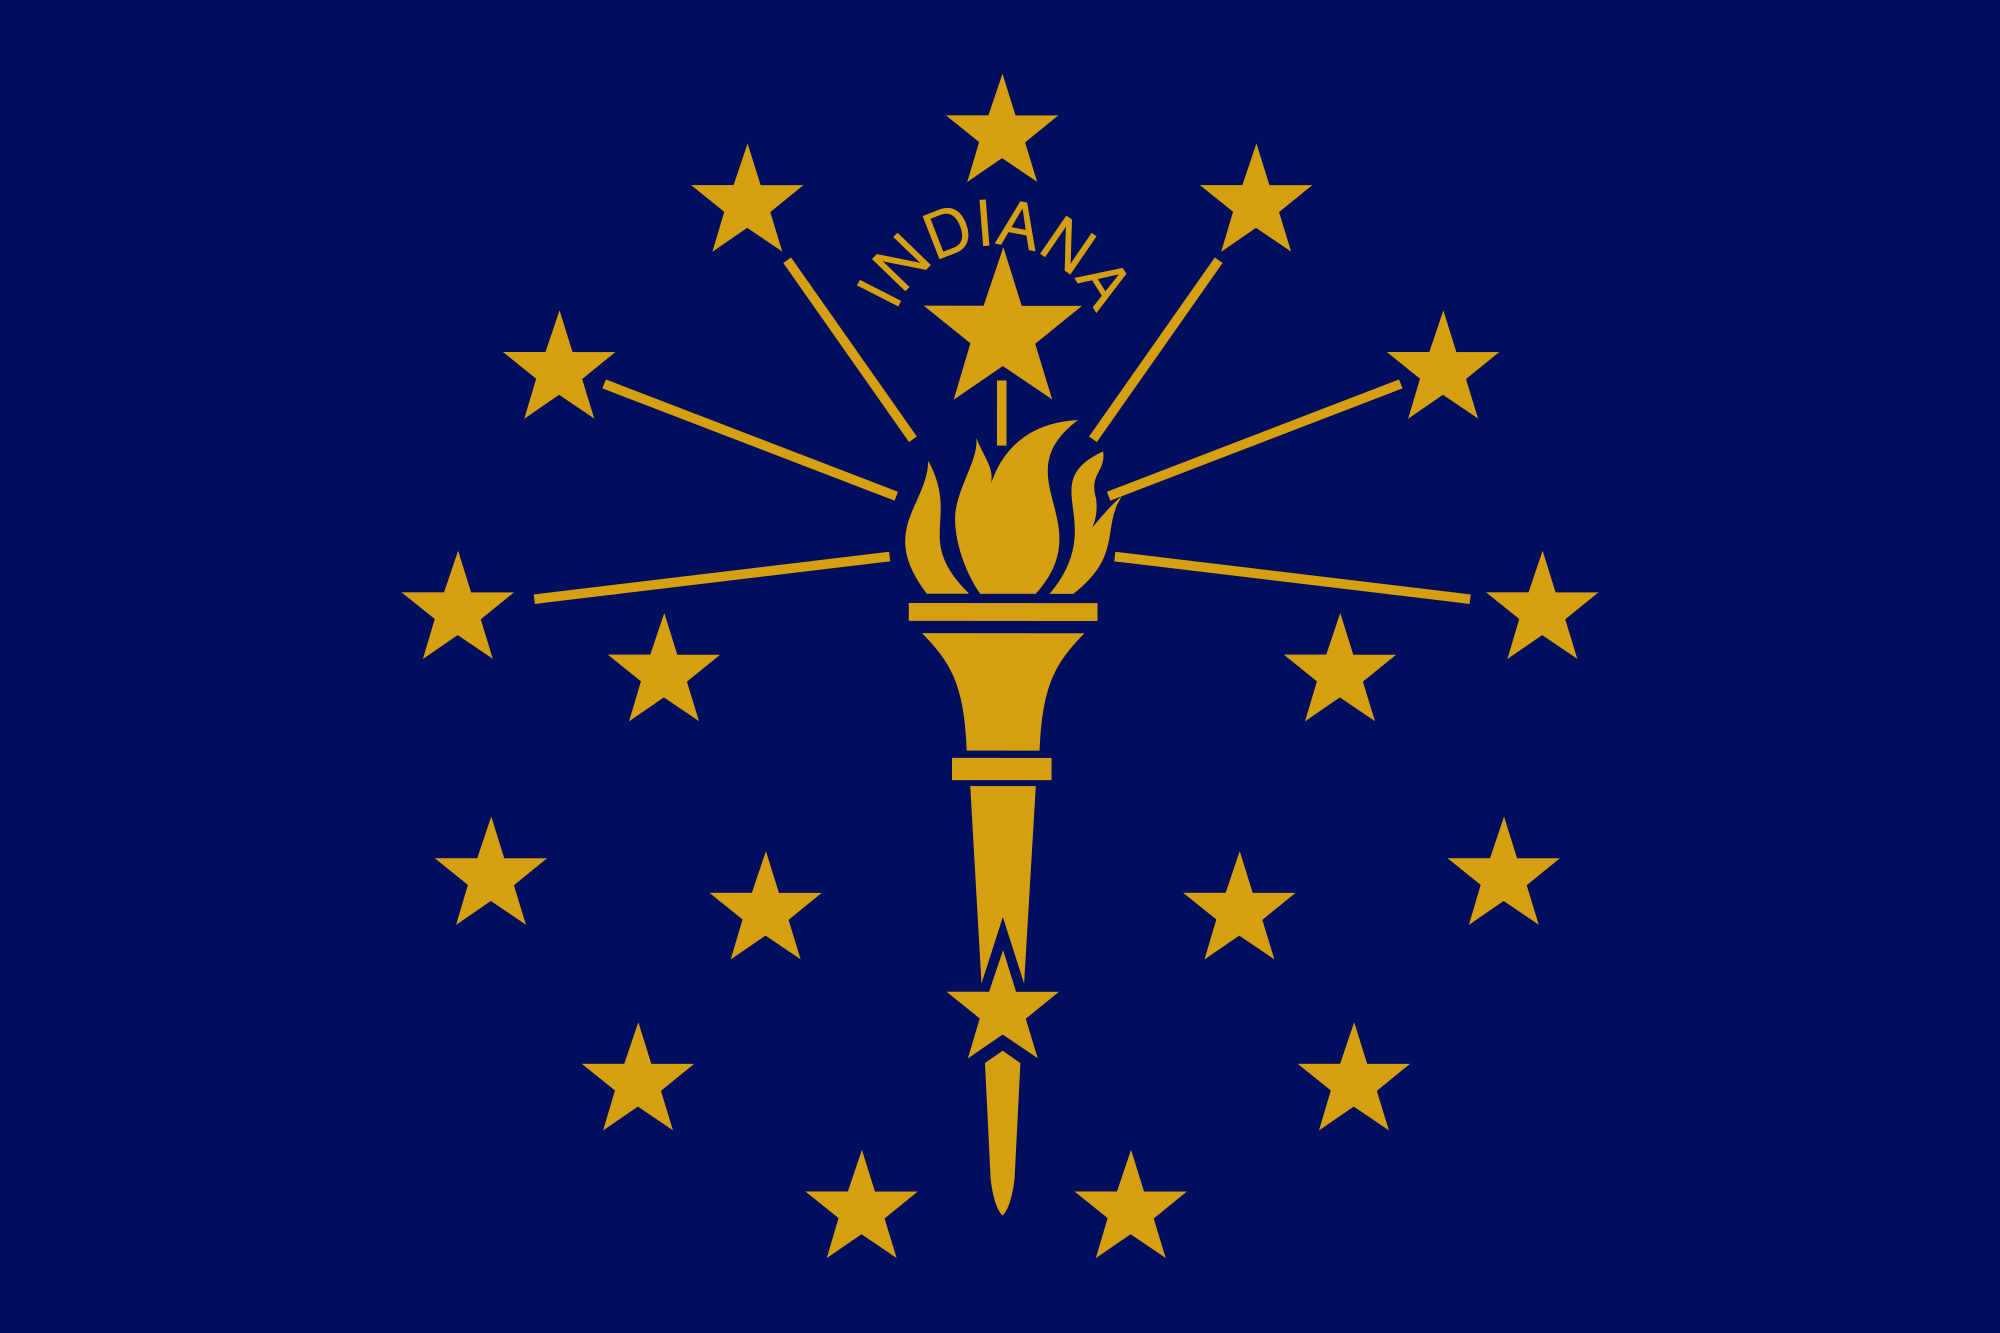 Indiana Vintage Wood Flag